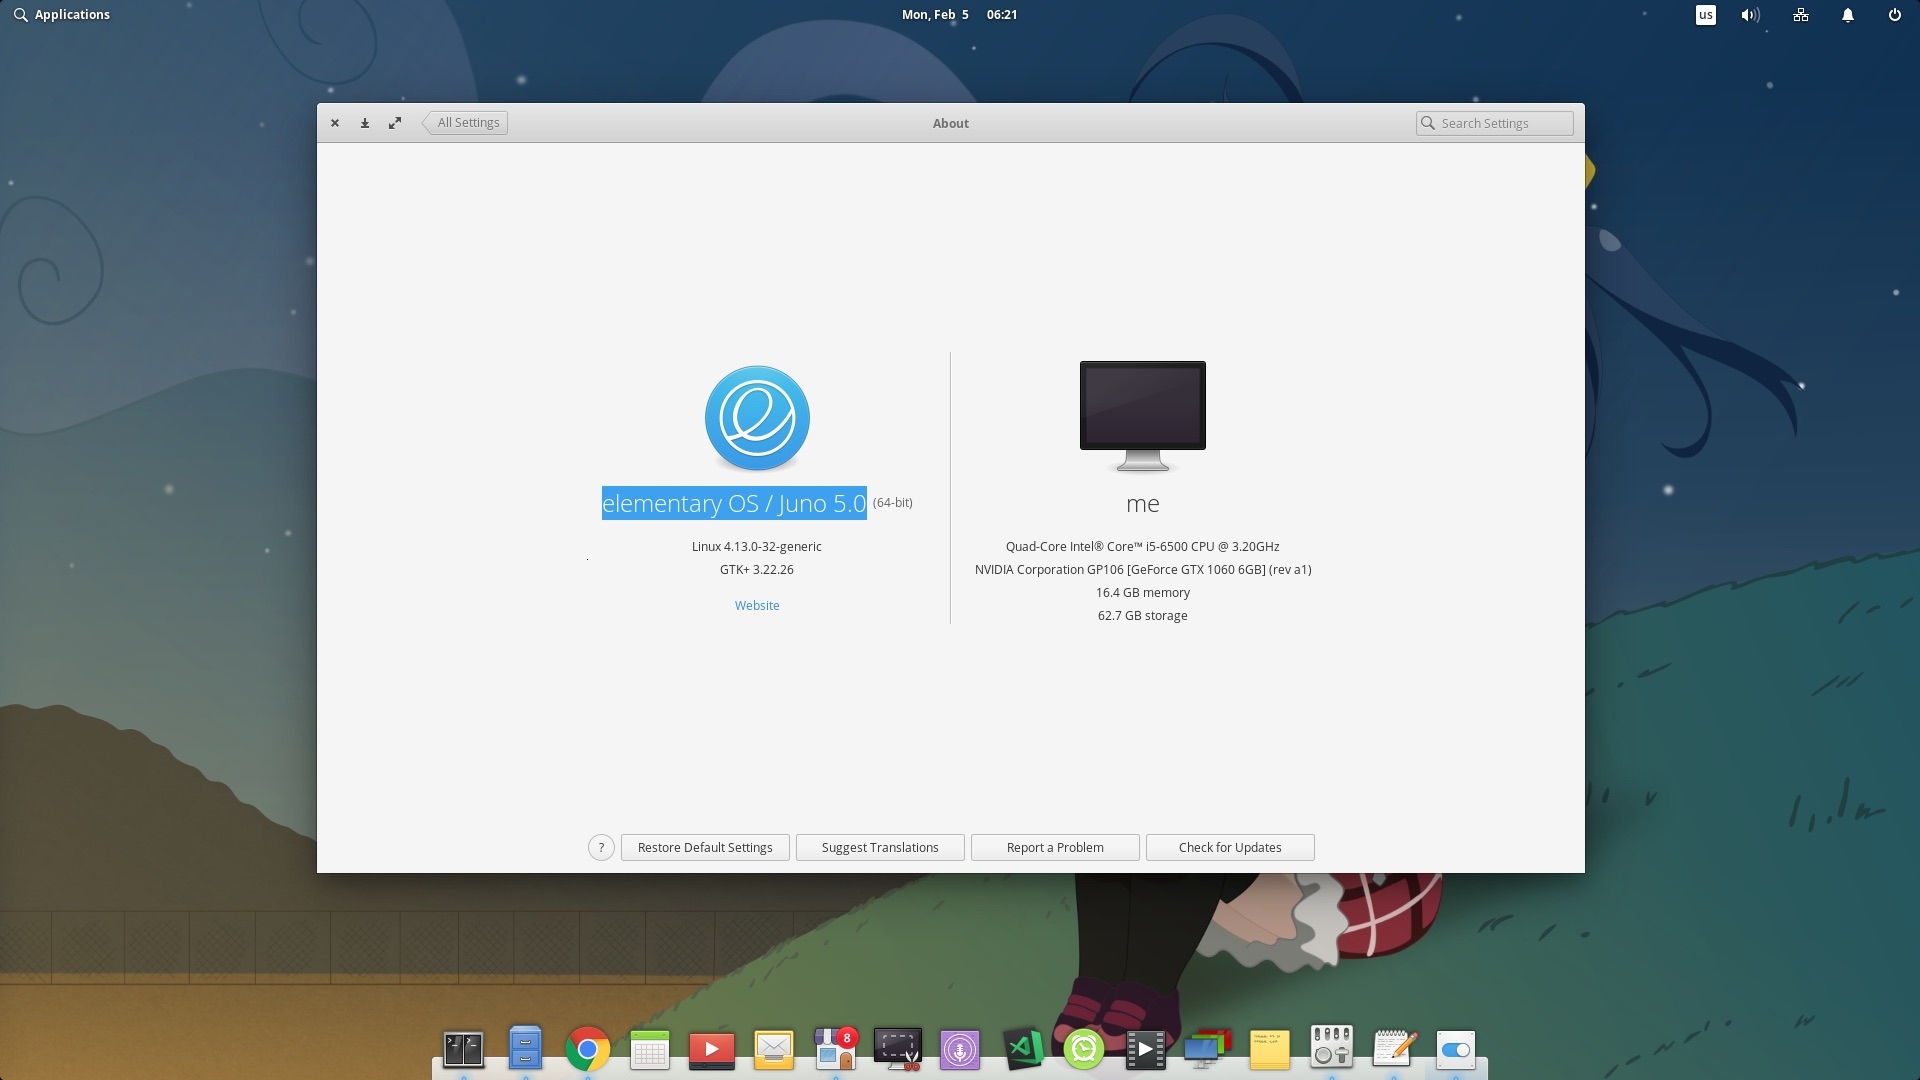 elementary os 5.0 screenshot